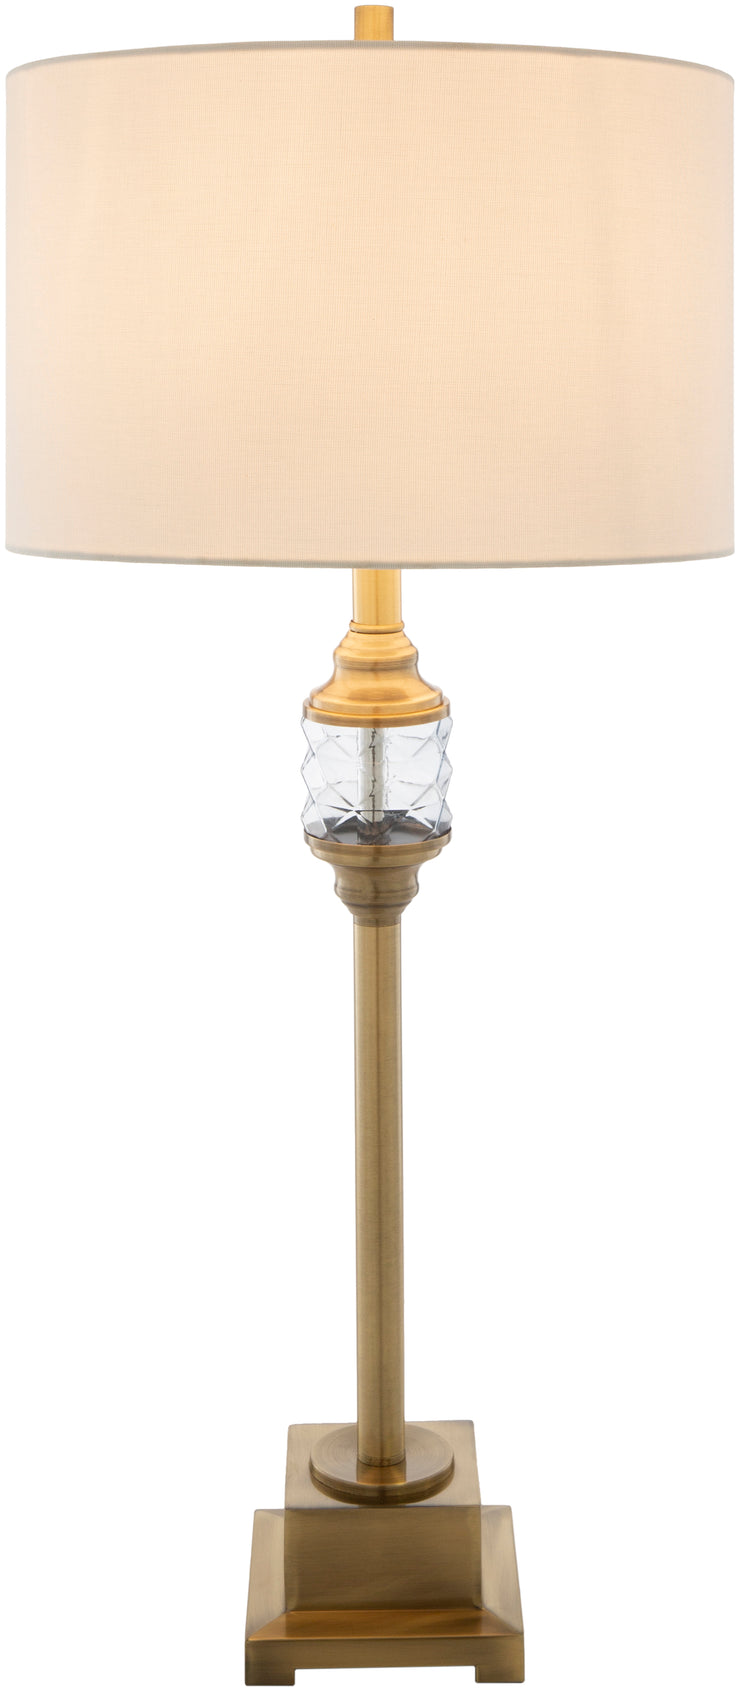 Prestwood Table Lamp in Various Finishes